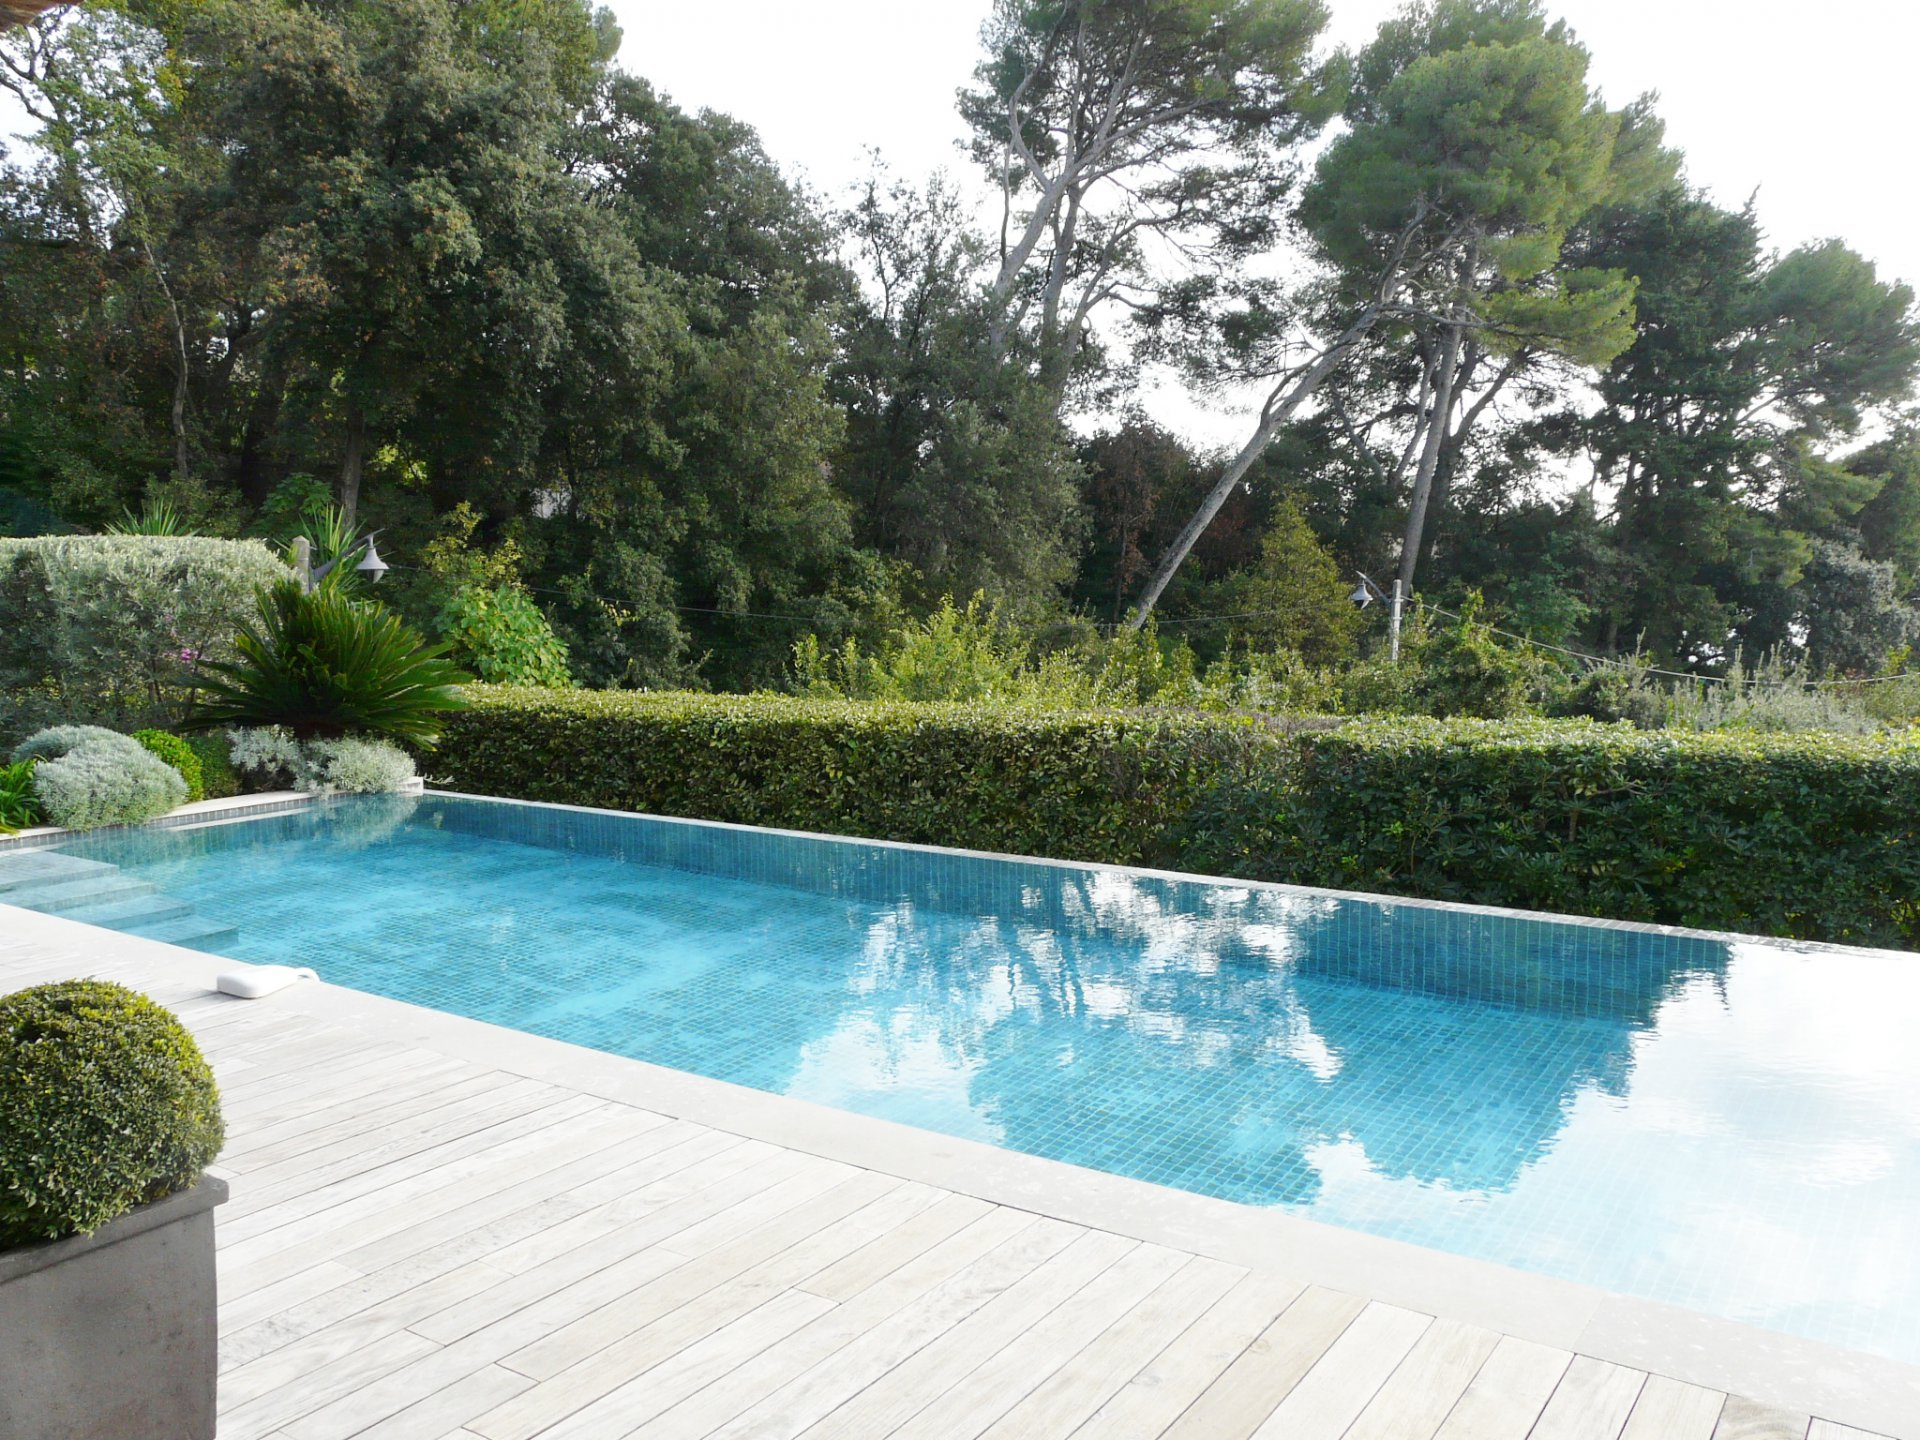 CANNES CALIFORNIA – SUPERB SEA VIEW AND MOUNTAIN VIEW